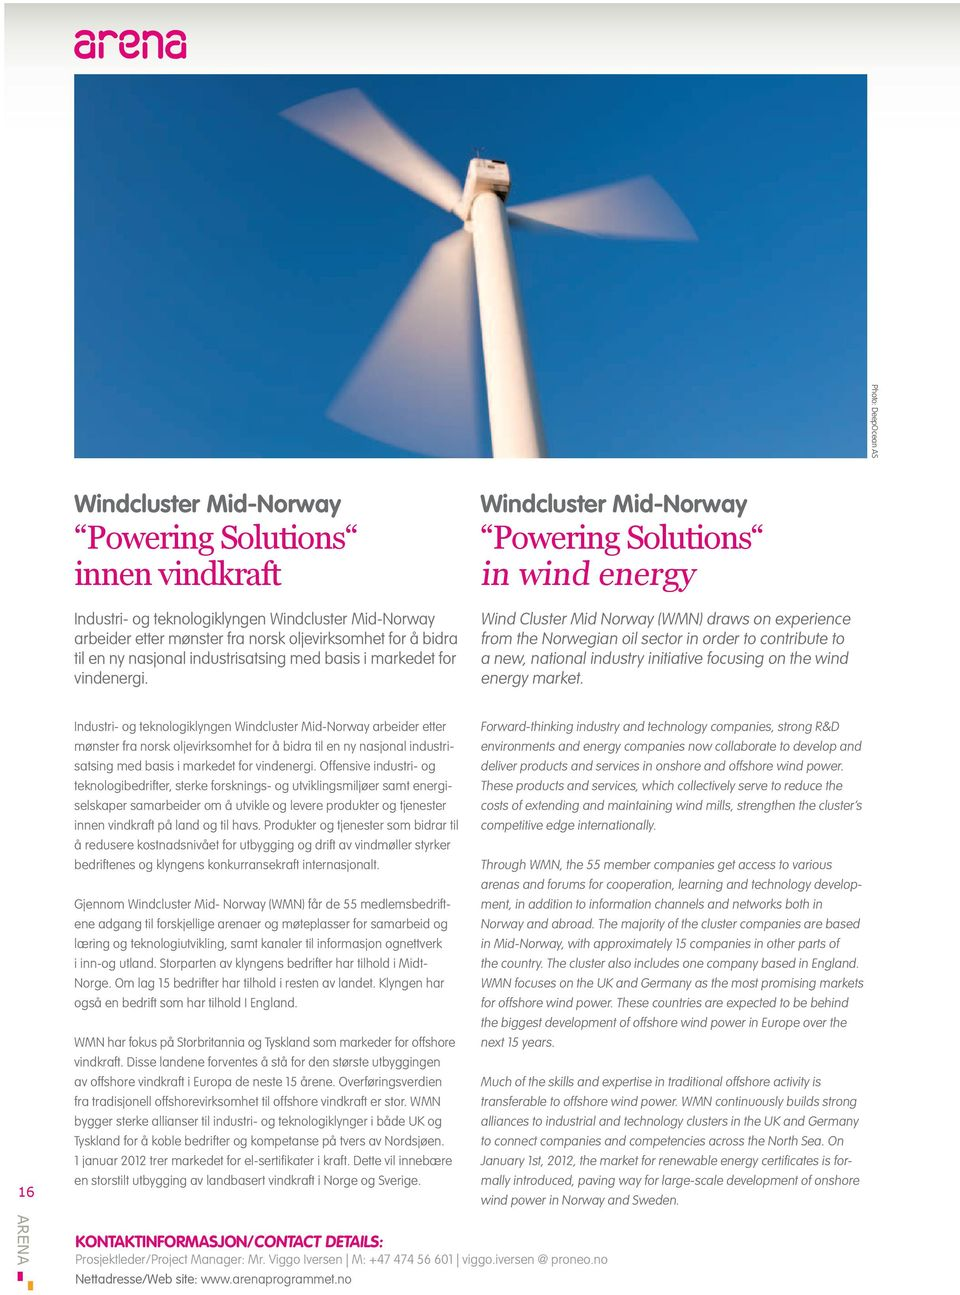 Windcluster Mid-Norway Powering Solutions in wind energy Wind Cluster Mid Norway (WMN) draws on experience from the Norwegian oil sector in order to contribute to a new, national industry initiative